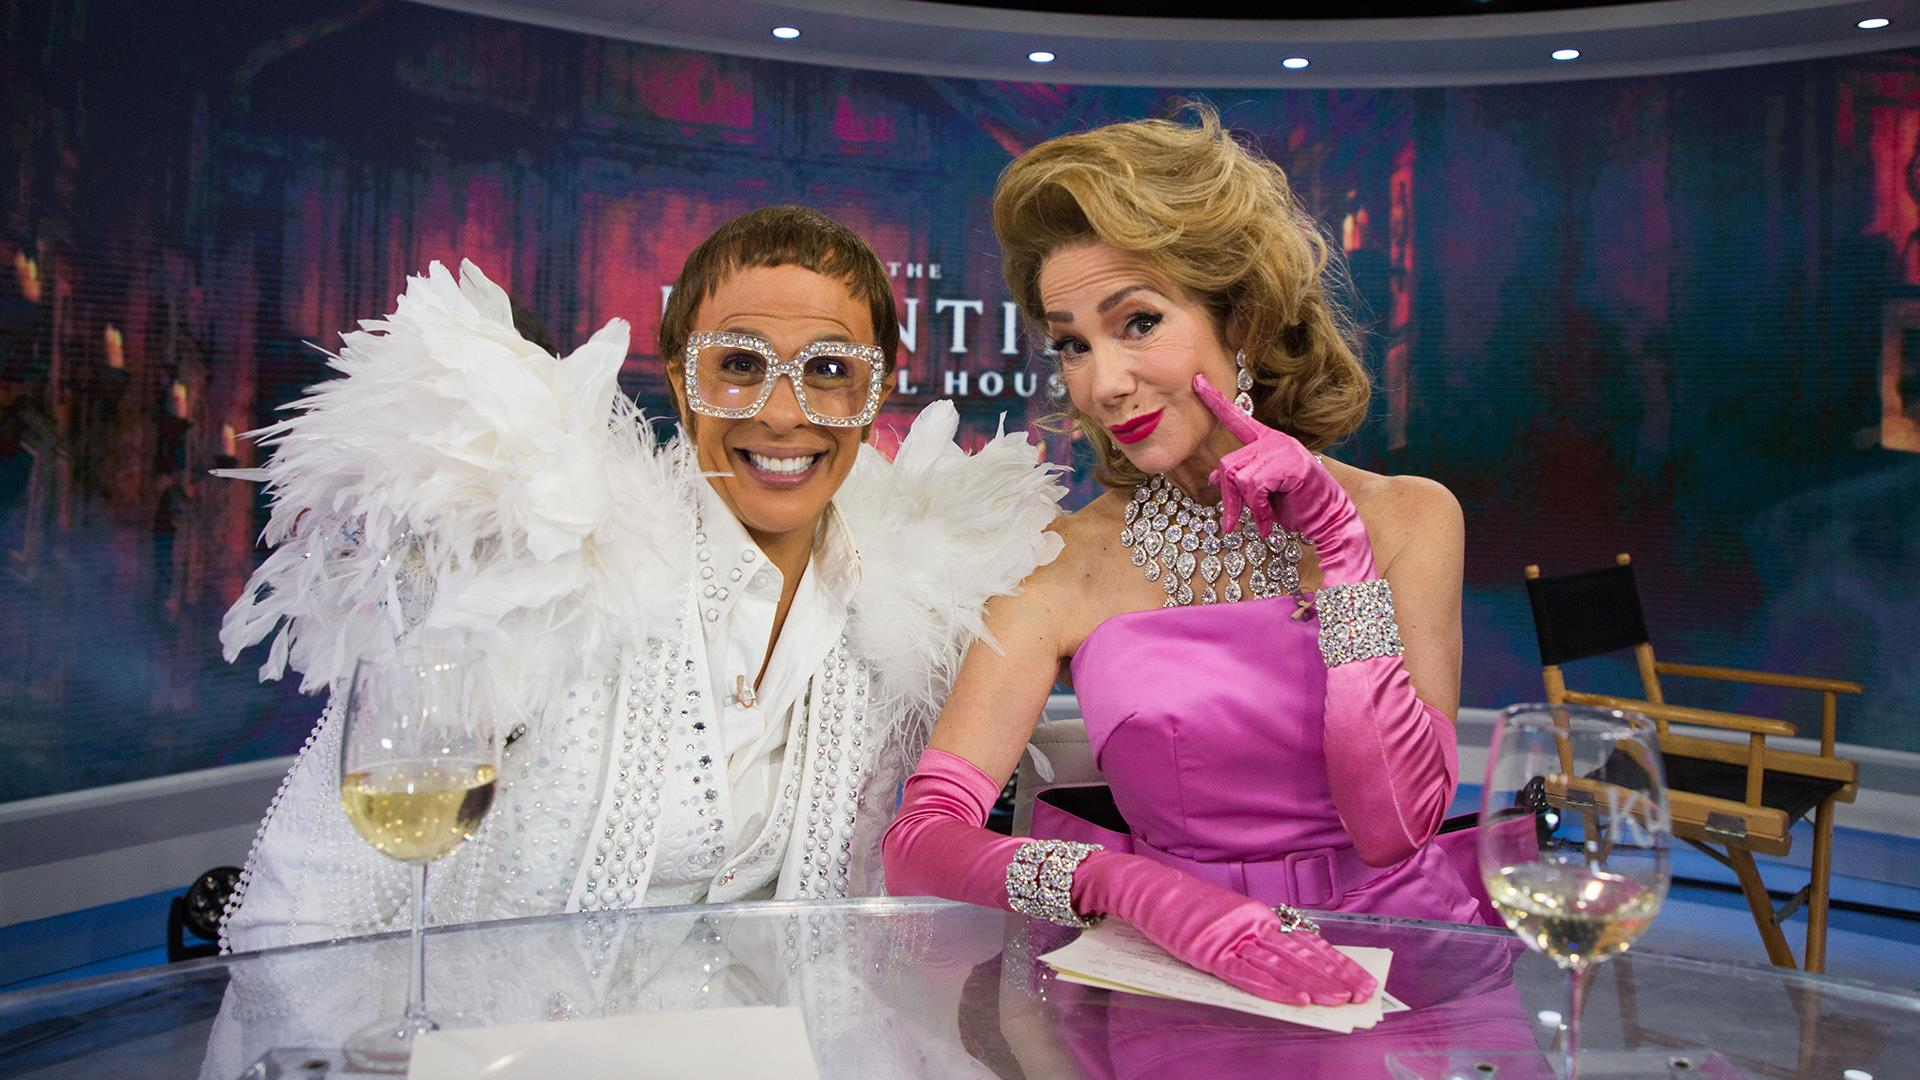 see klg and hoda channel madonna and elton john for halloween